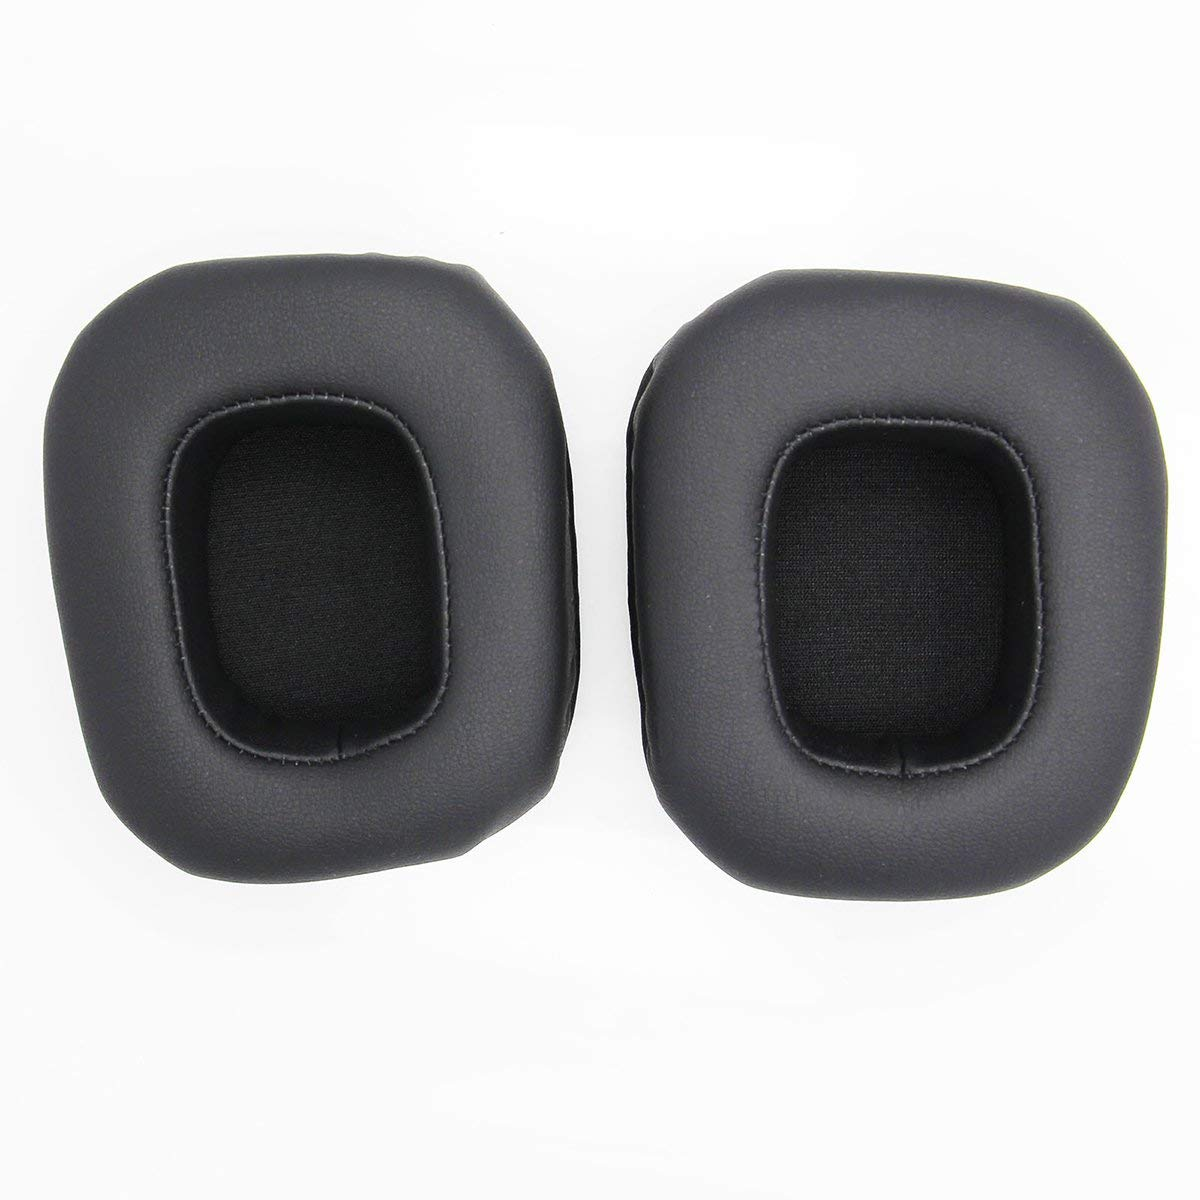 Replacement Ear Pads Ear Cushion Pads Cover for Razer Tiamat Over Ear 7.1 Surround Sound PC Gaming Headphones